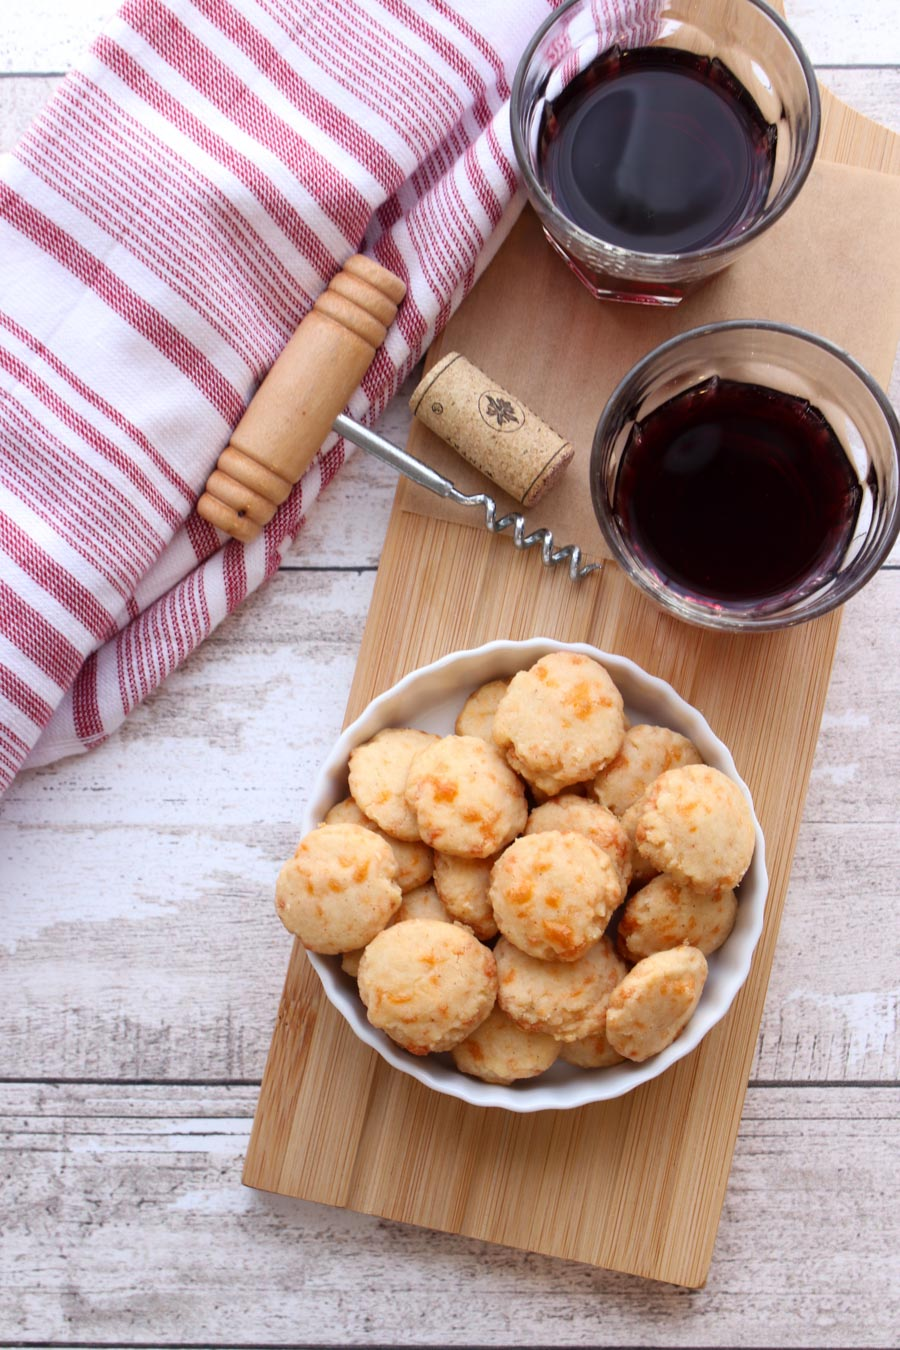 Crackers and a glass of red wine on a serving board